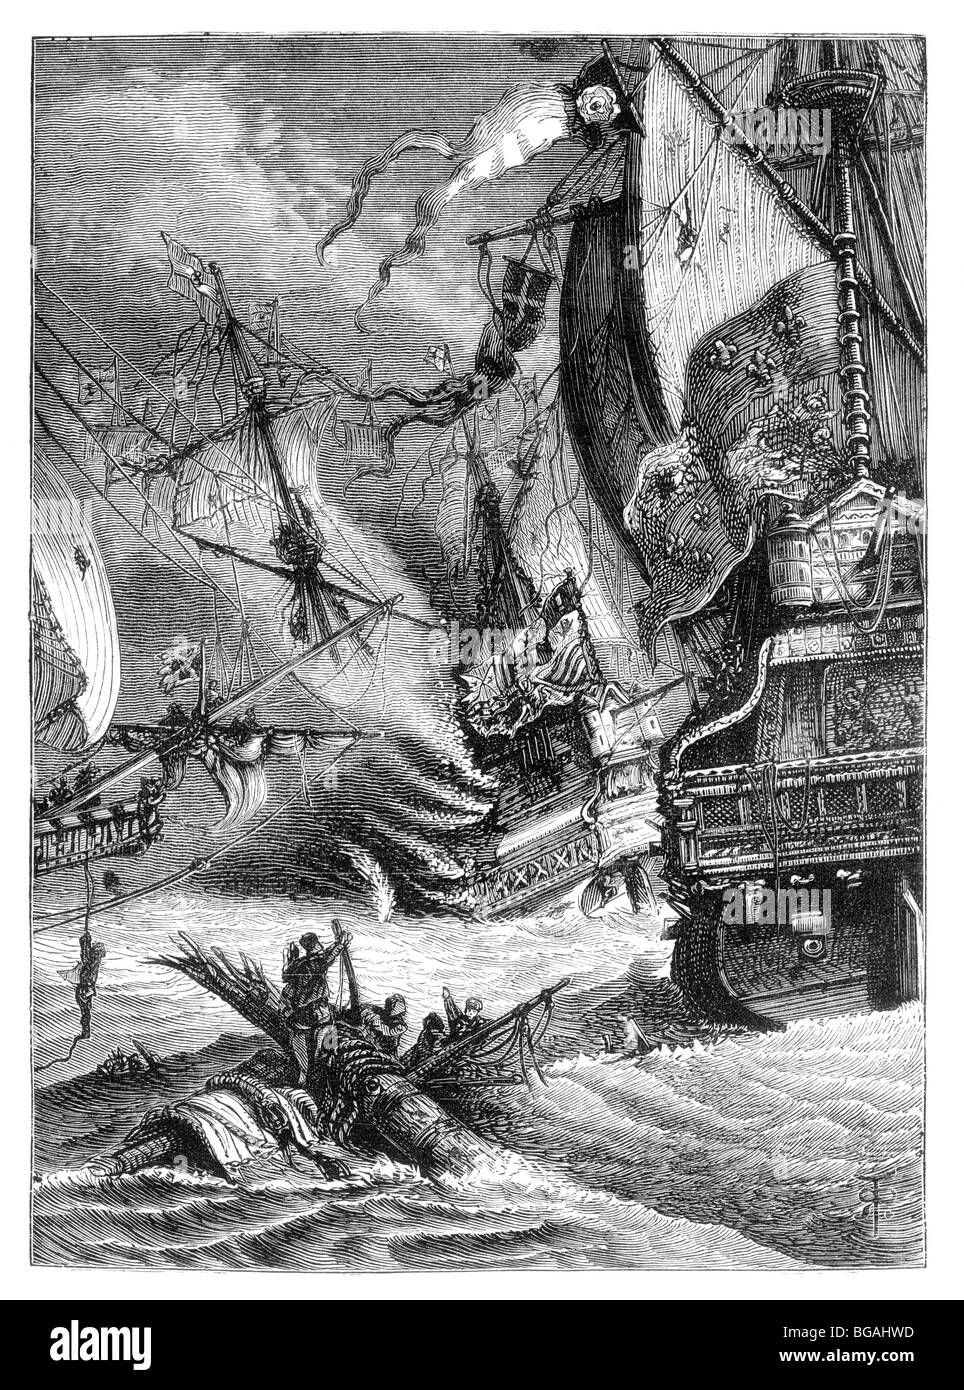 Illustration; The destruction of the Spanish Armada by the English Fleet, 1588 - Stock Image